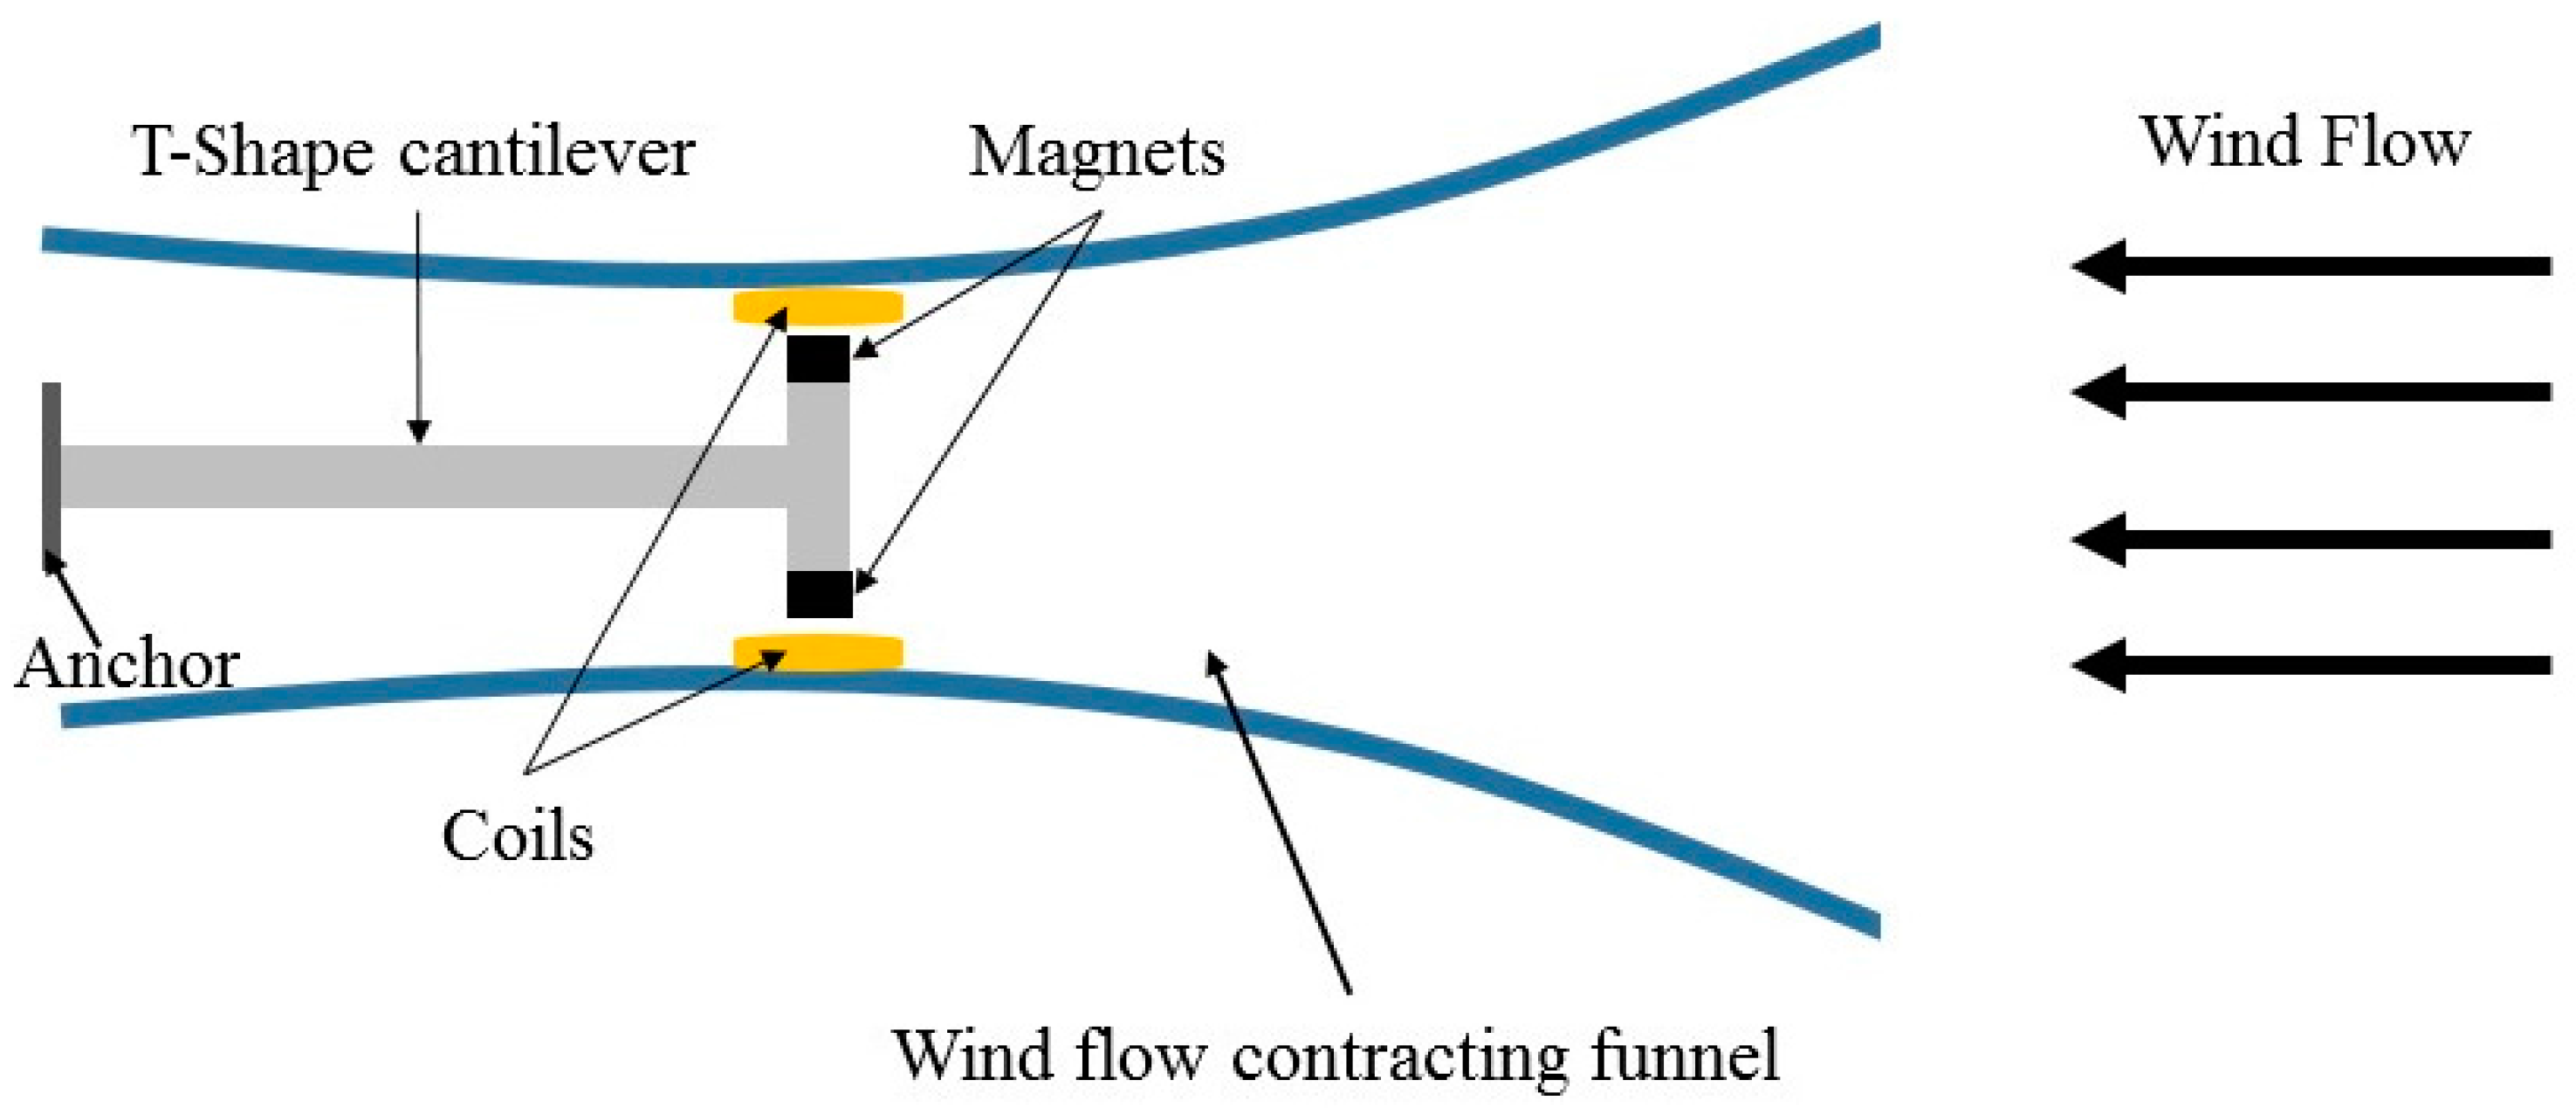 Sensors Free Full Text Portable Wind Energy Harvesters For Low Wiring Diagram Likewise Power Plant Schematic 16 01101 G013 1024 Figure 13 The Electromagnetic Harvester With Flow